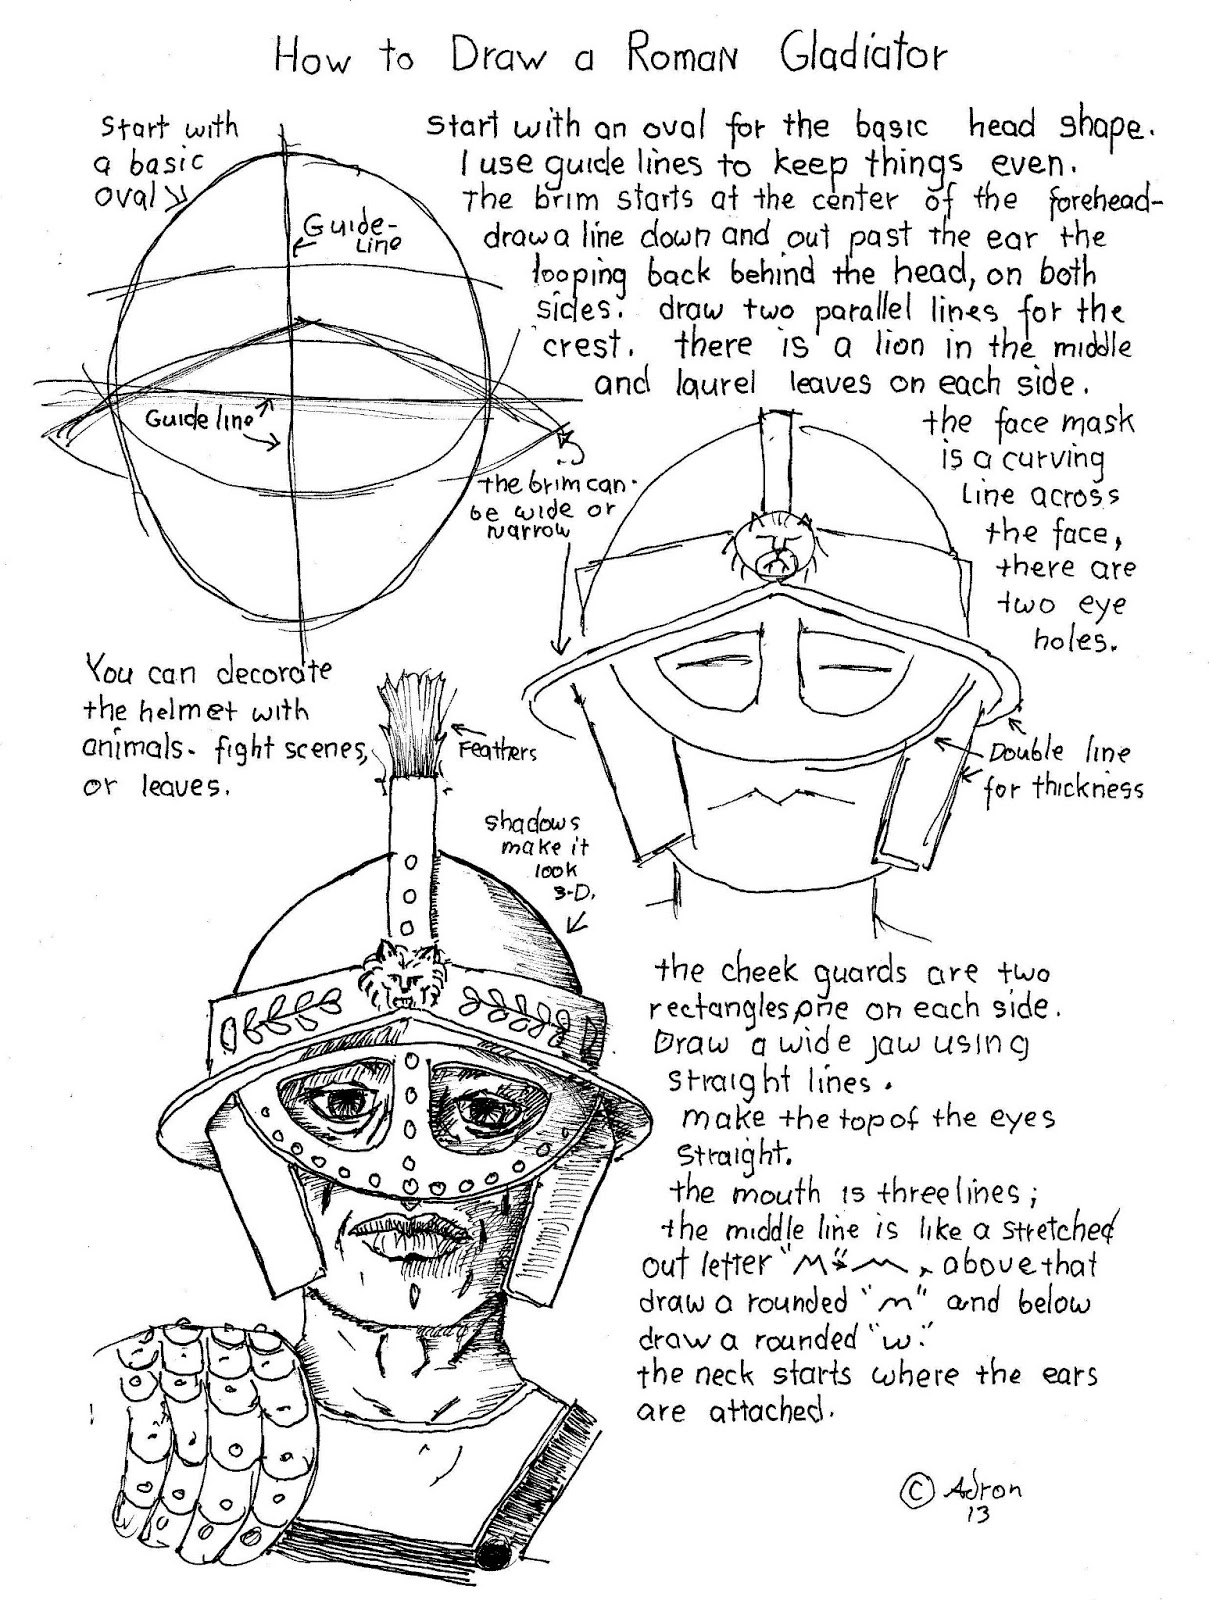 how to draw a gladiator gladiator coloring page at getdrawings free download a to draw how gladiator